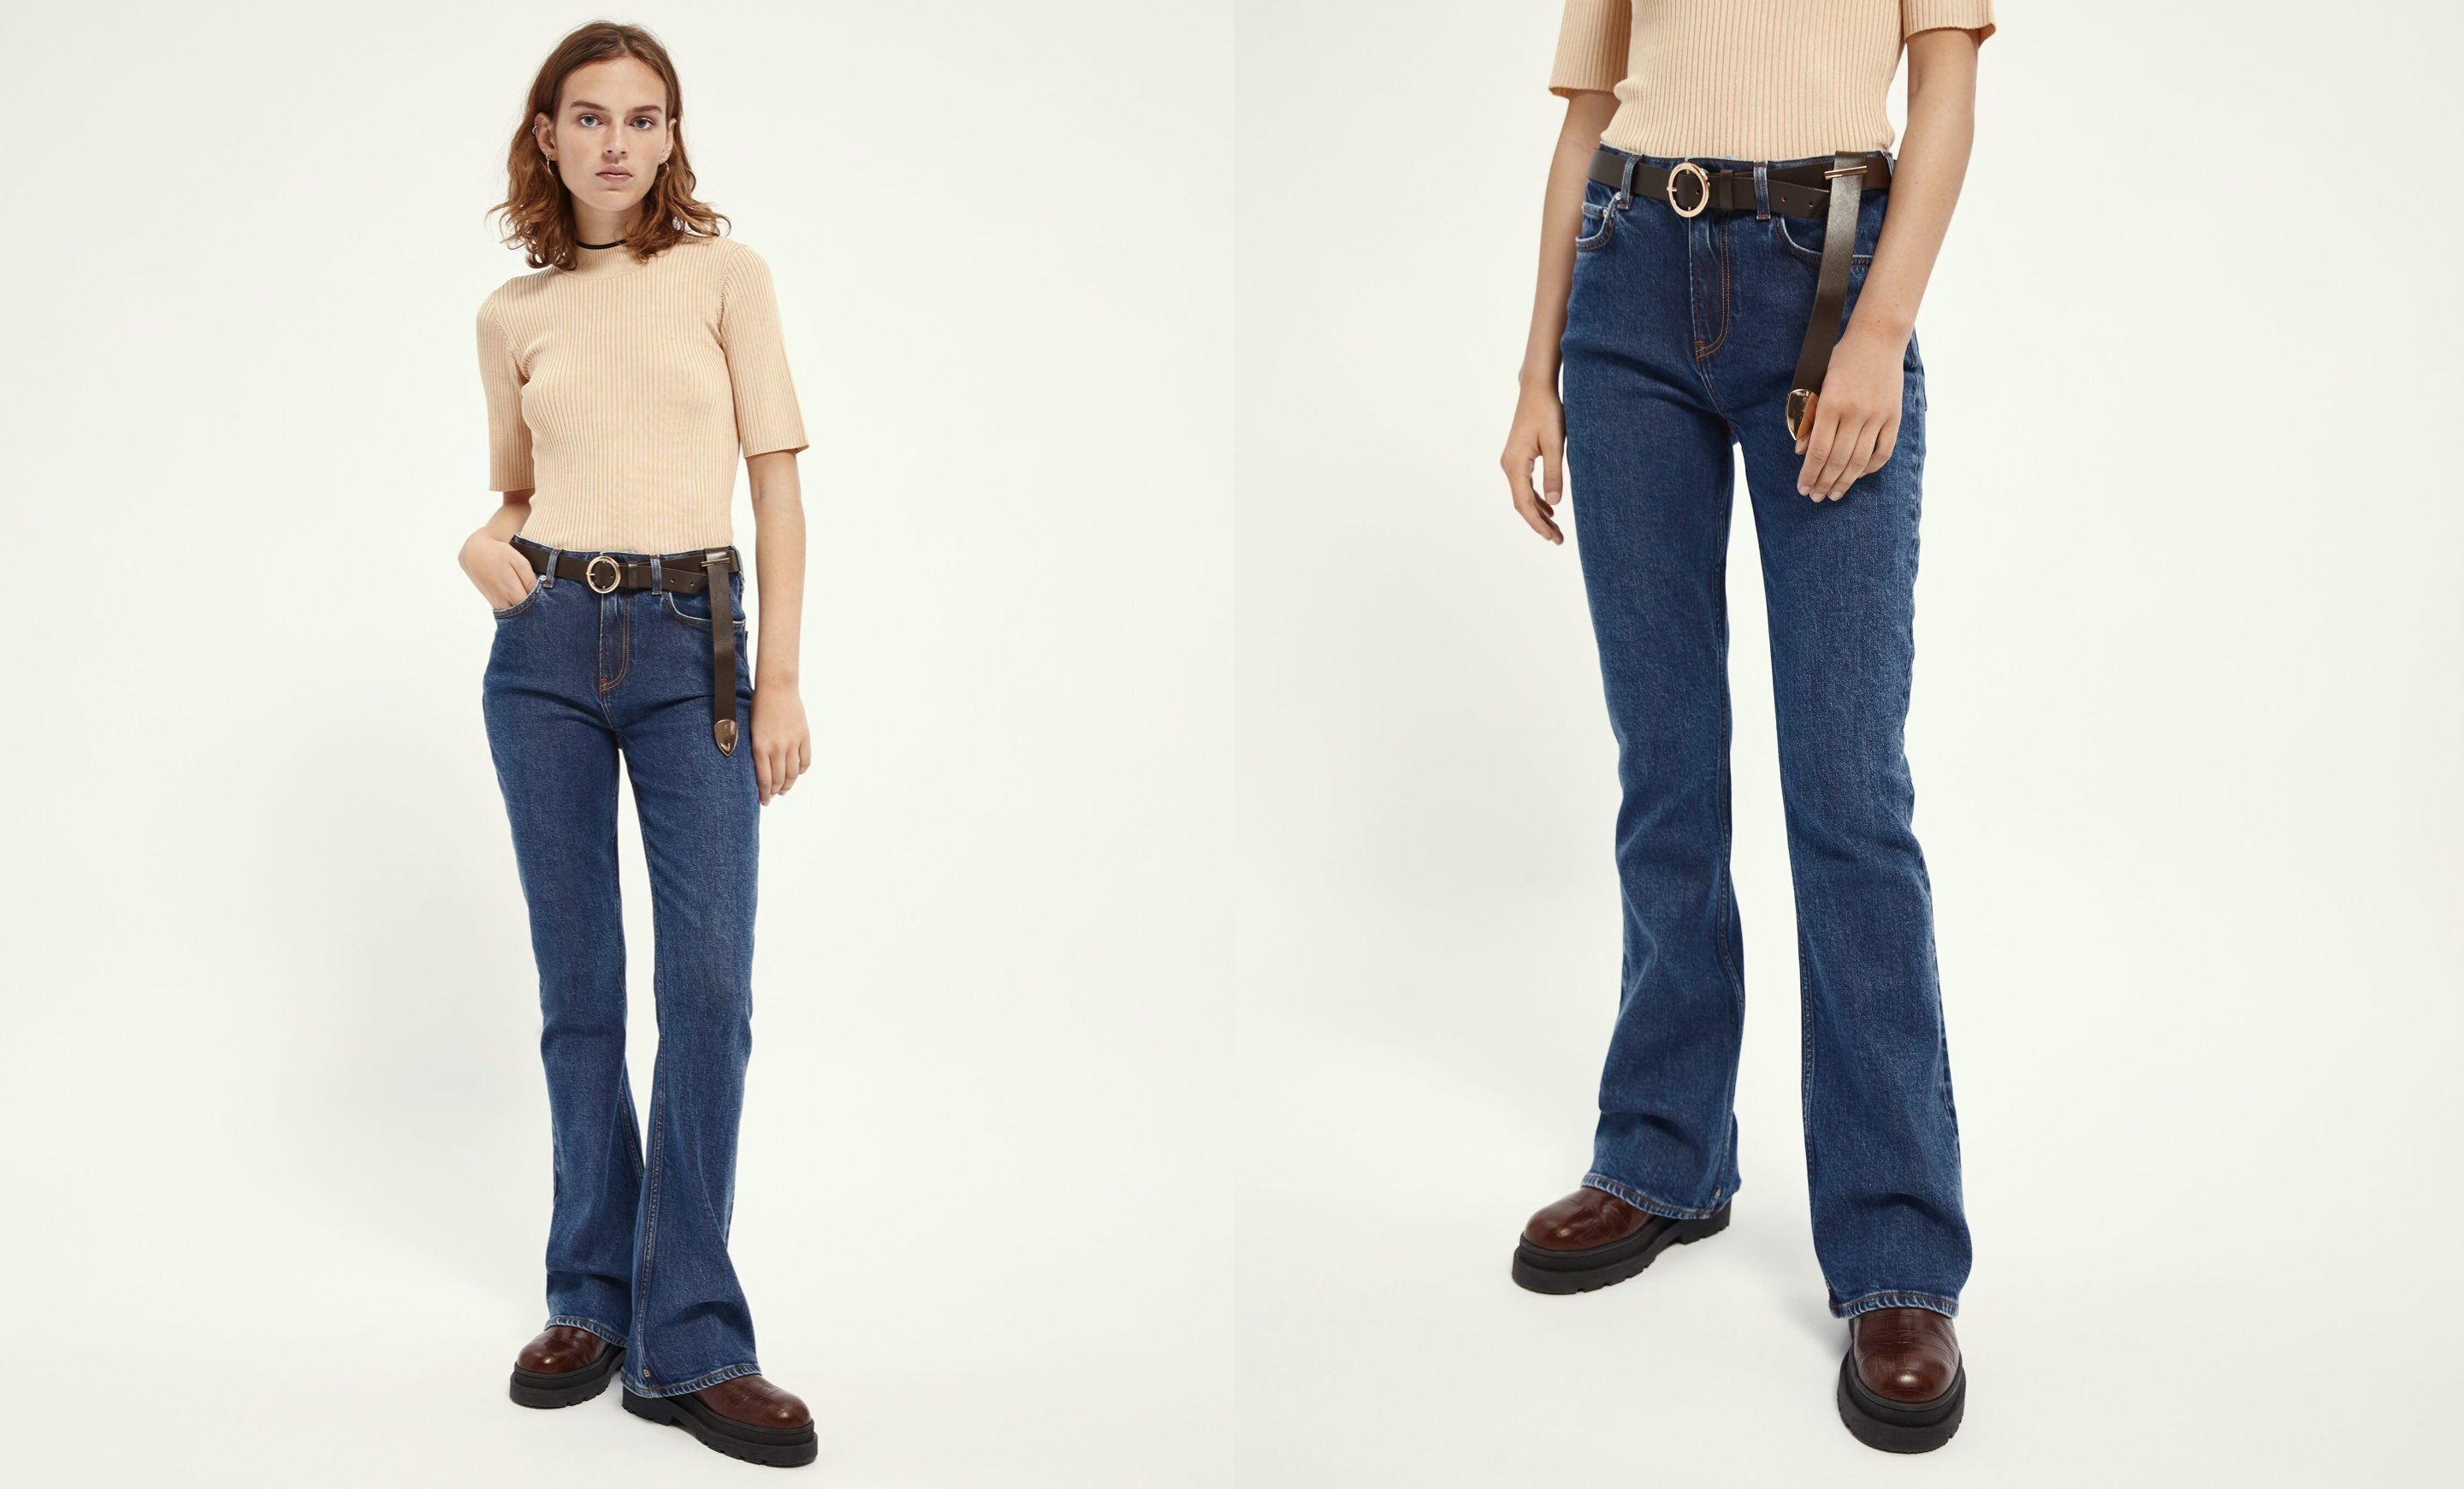 The charm denim campaign 2021 adults